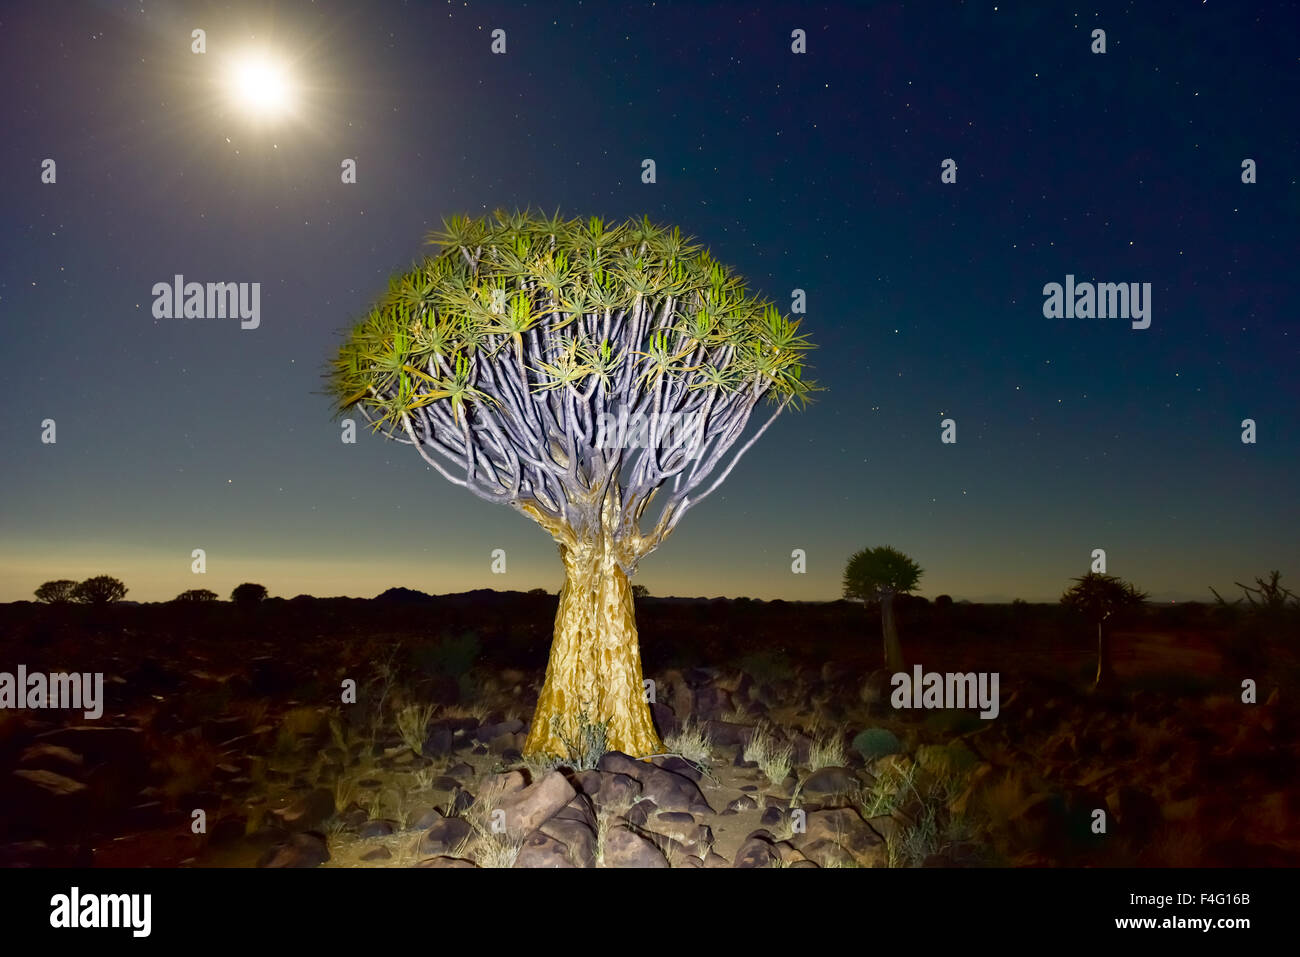 Quiver Tree Forest outside of Keetmanshoop, Namibia at night on a full moon with stars in the sky. Stock Photo